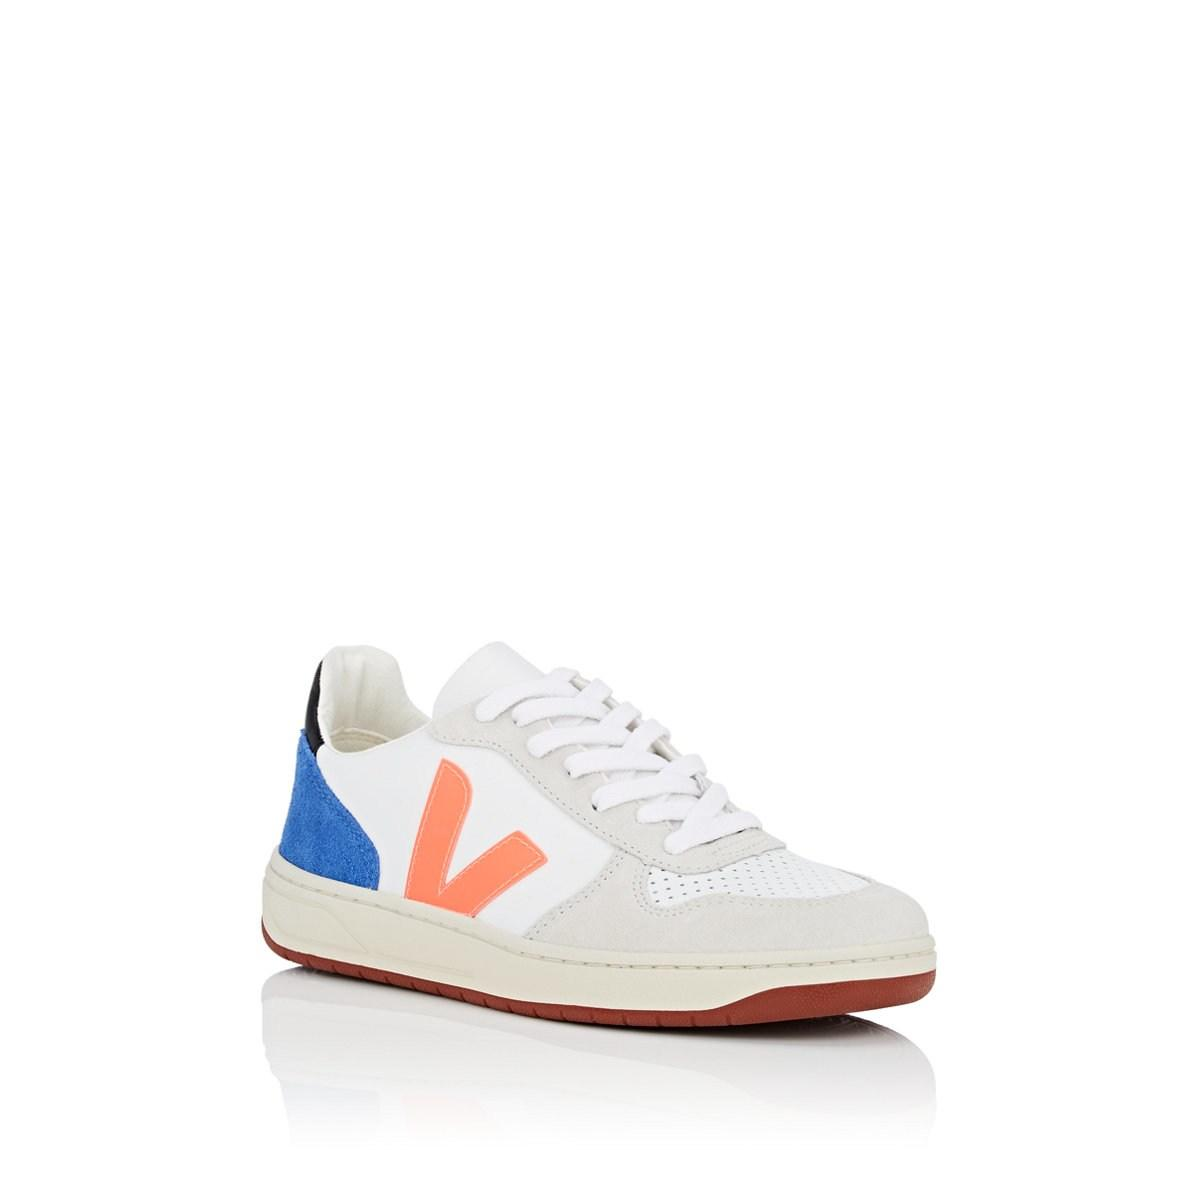 cc93ff38766d Veja - White V-10 Leather   Suede Sneakers - Lyst. View fullscreen